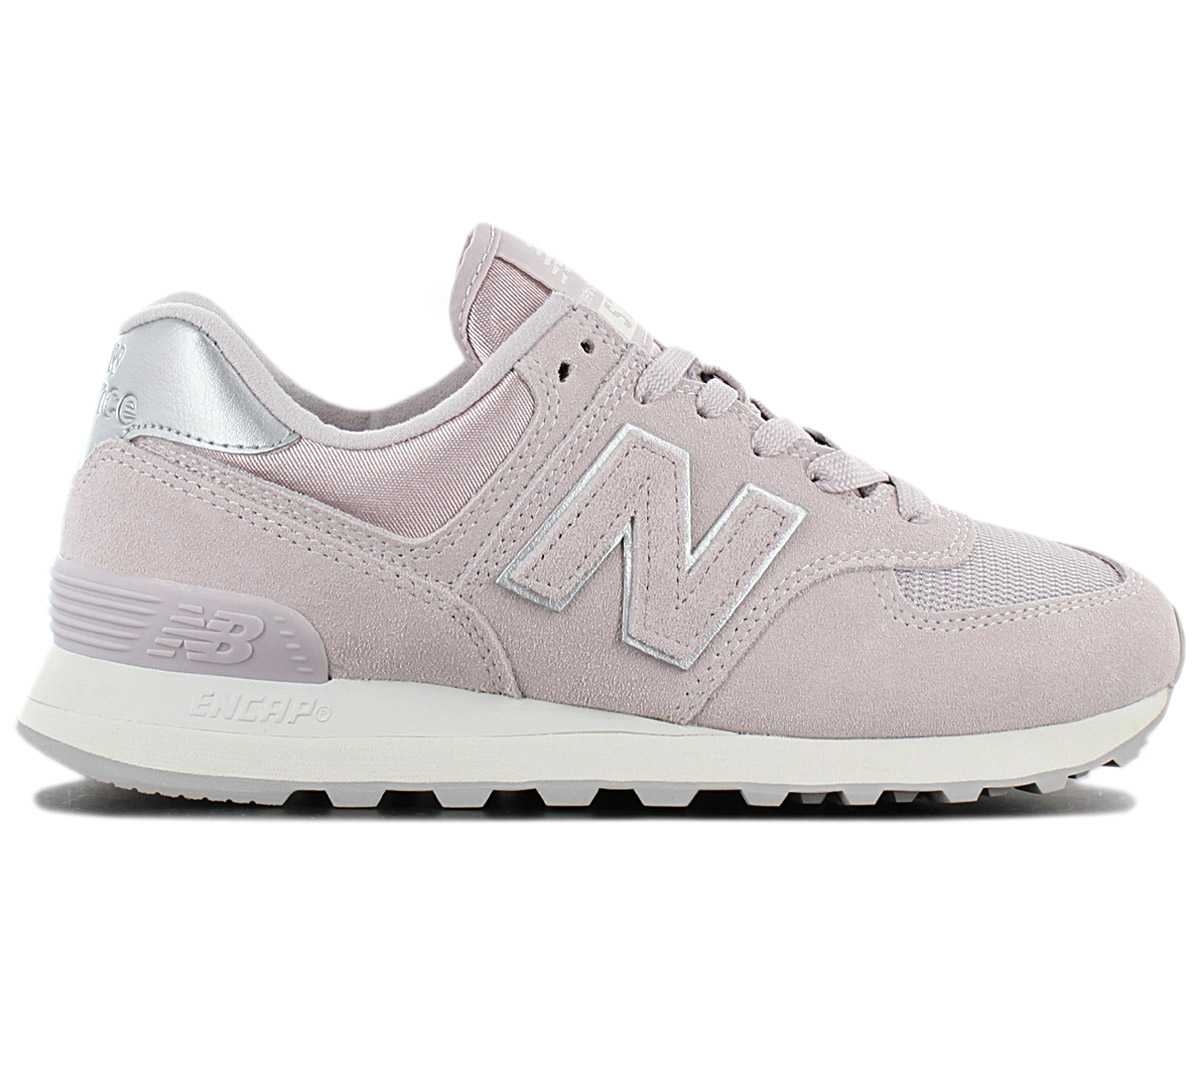 Details about New balance Classics 574 WL574LCS Women's Sneaker Purple Shoes Sneakers New